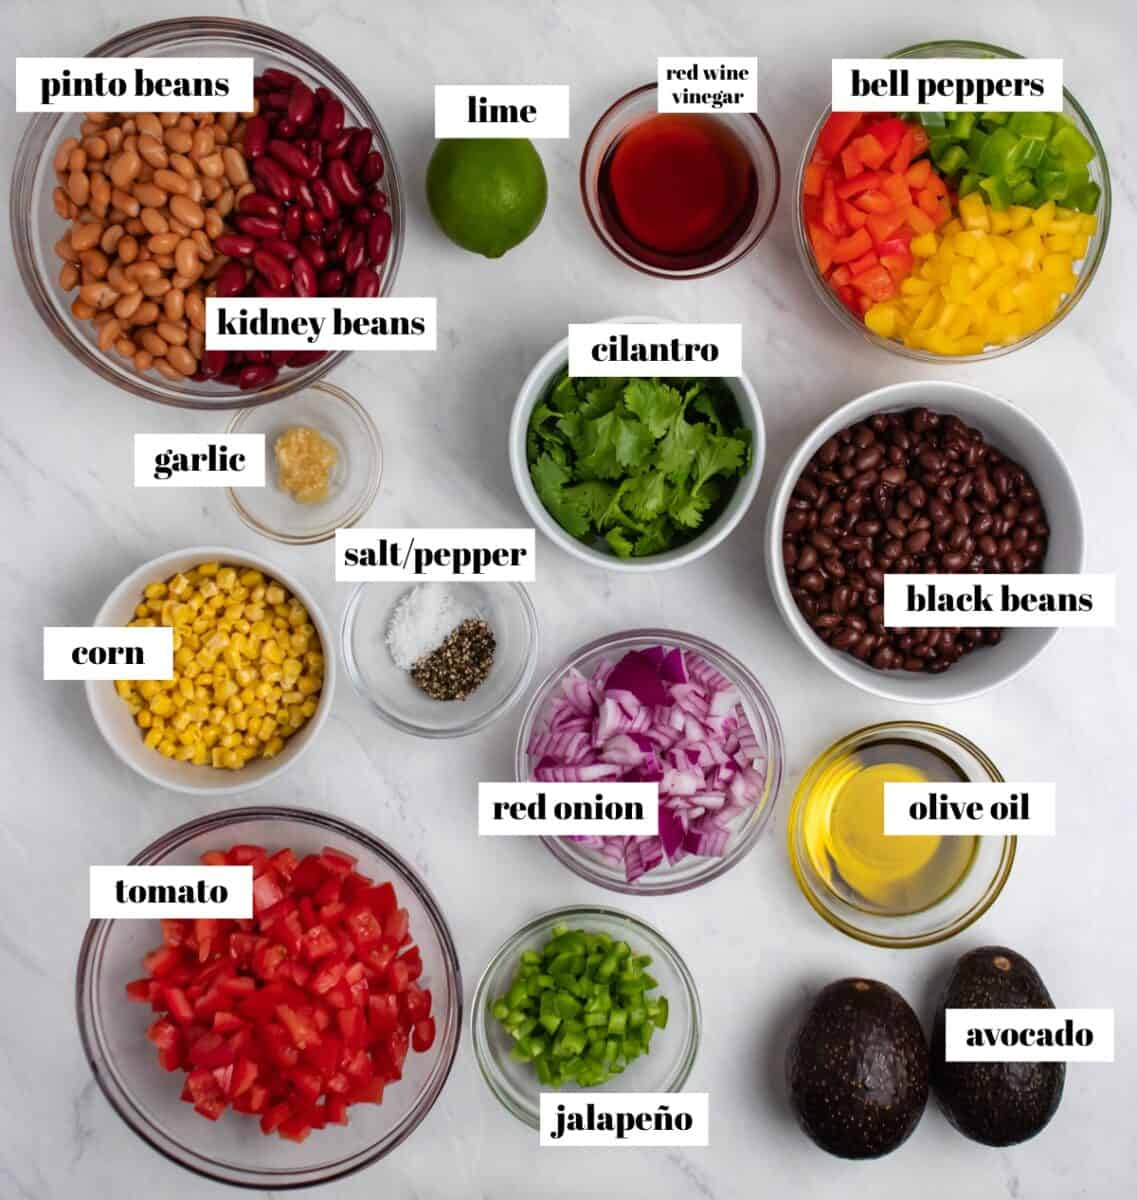 Peppers, beans, cilantro, avocado, corn and other ingredients labeled on counter.